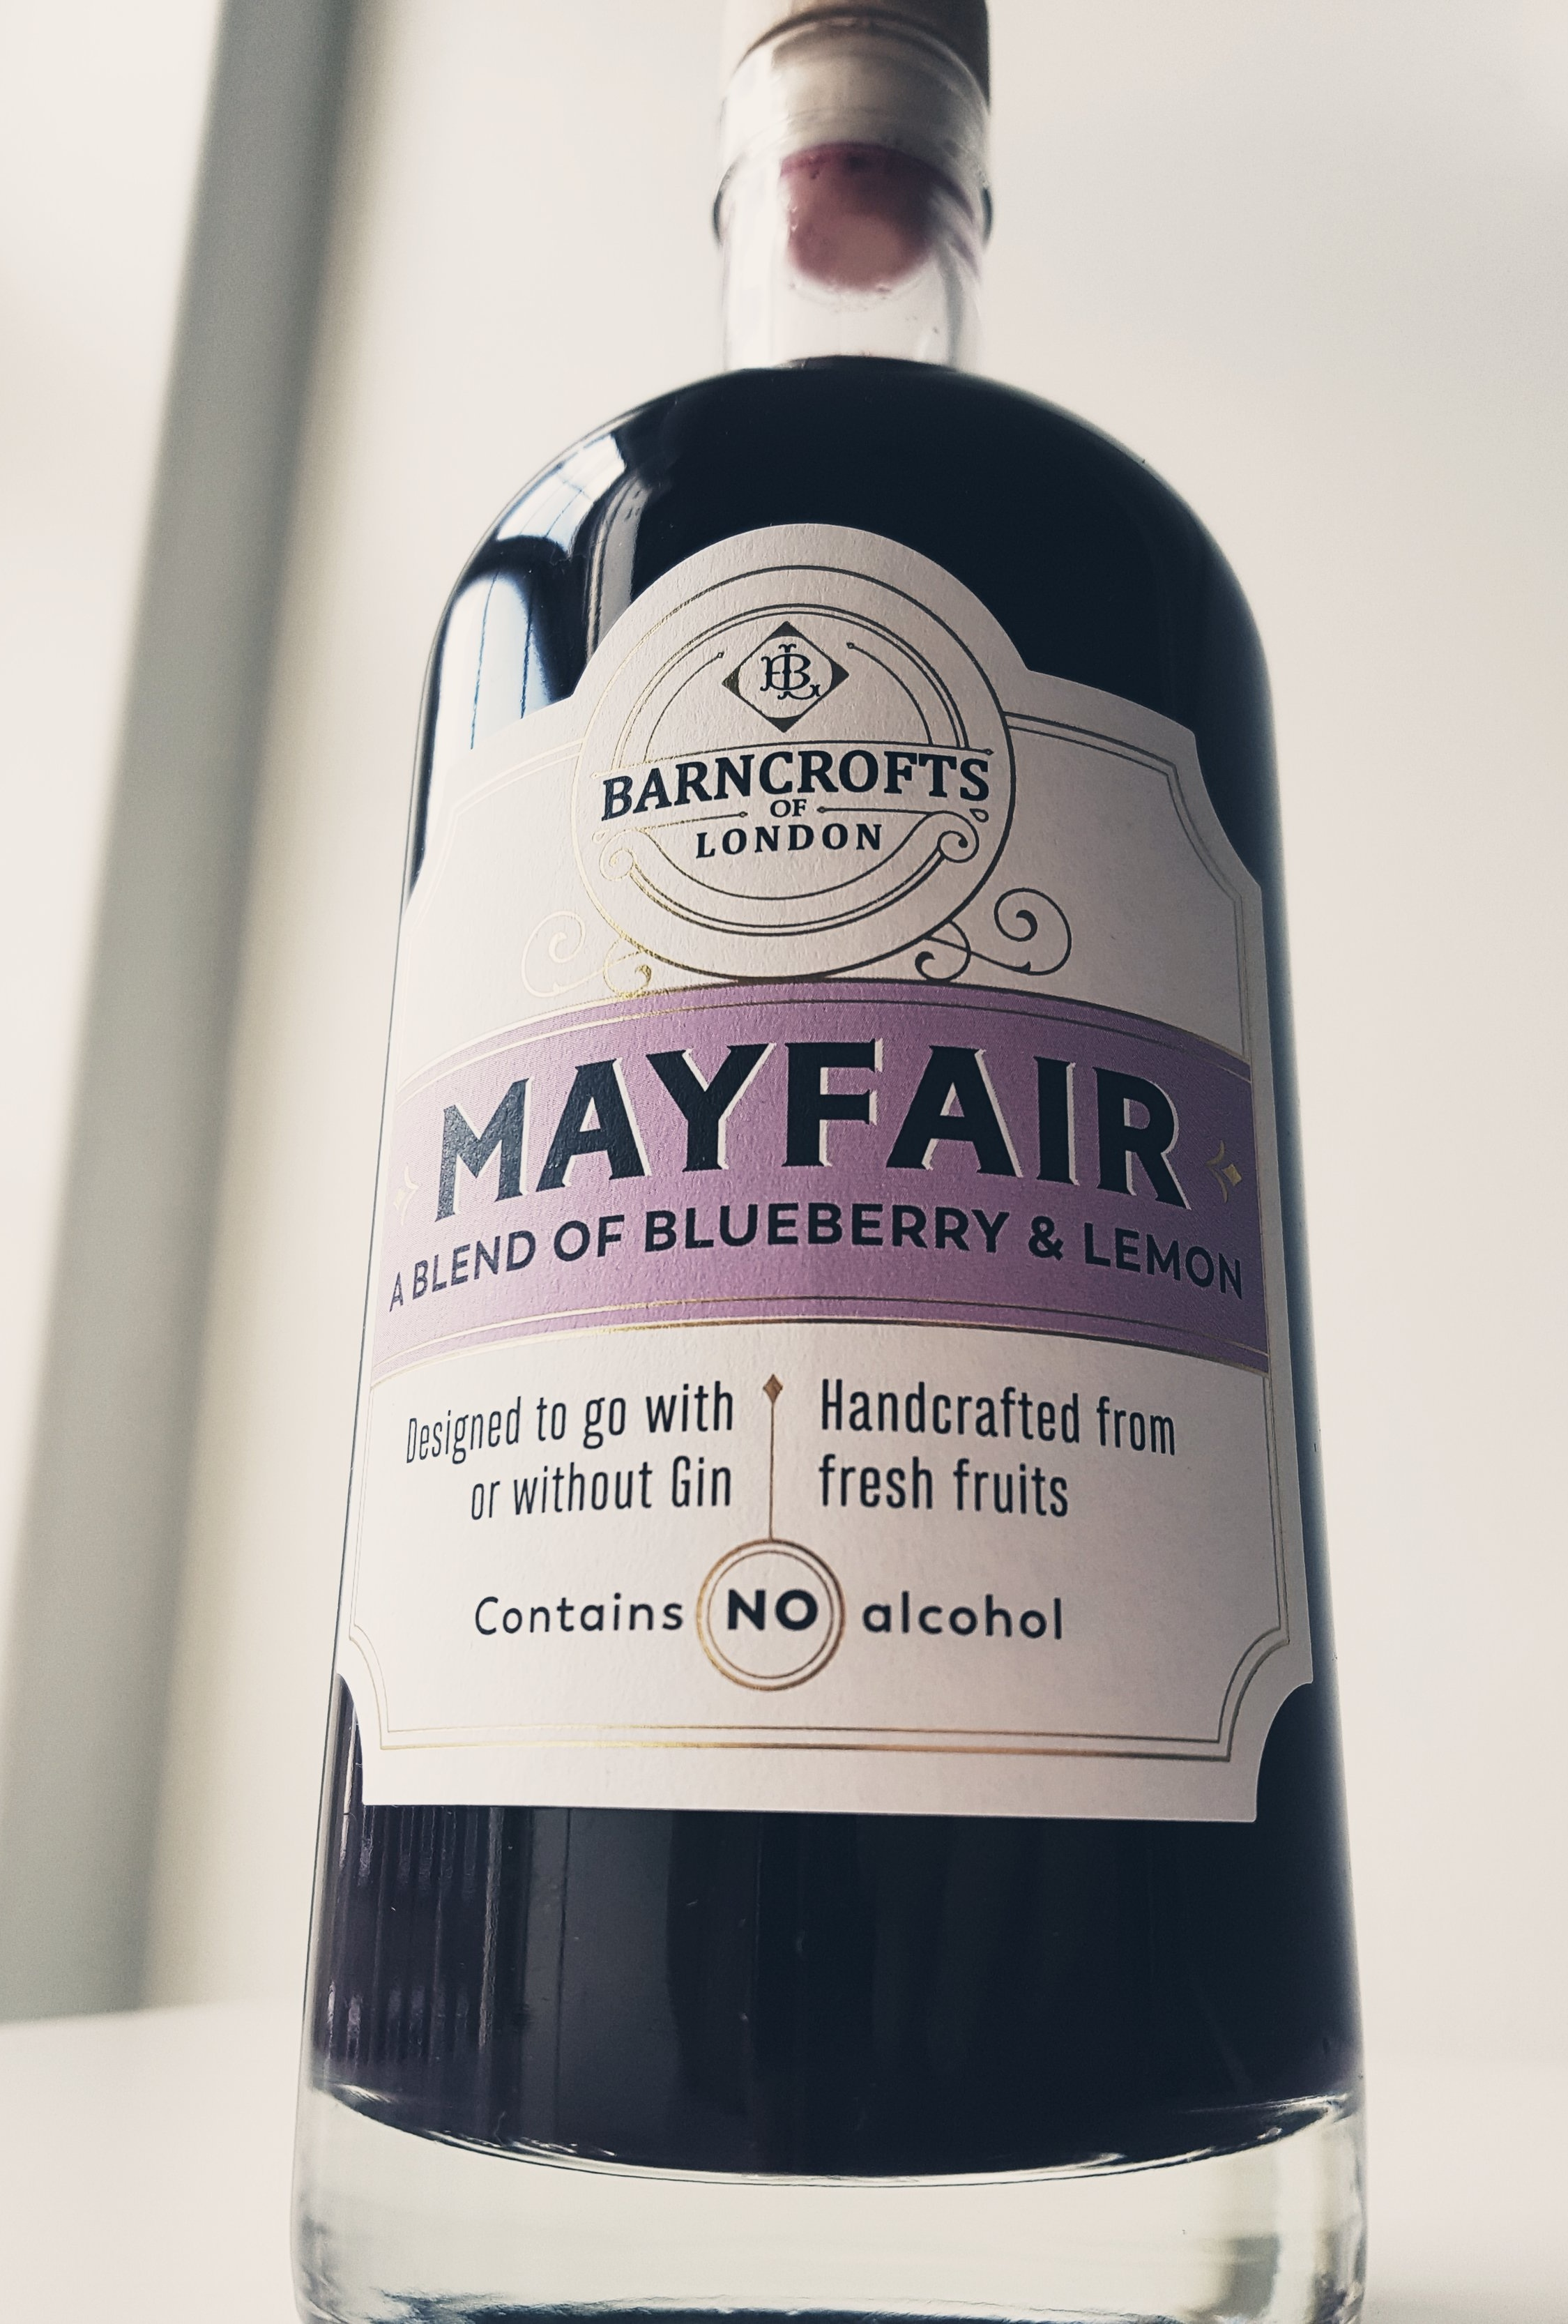 Soft, subtle and sophisticated - Our Mayfair blend creates a fresh & fruity gin cocktail